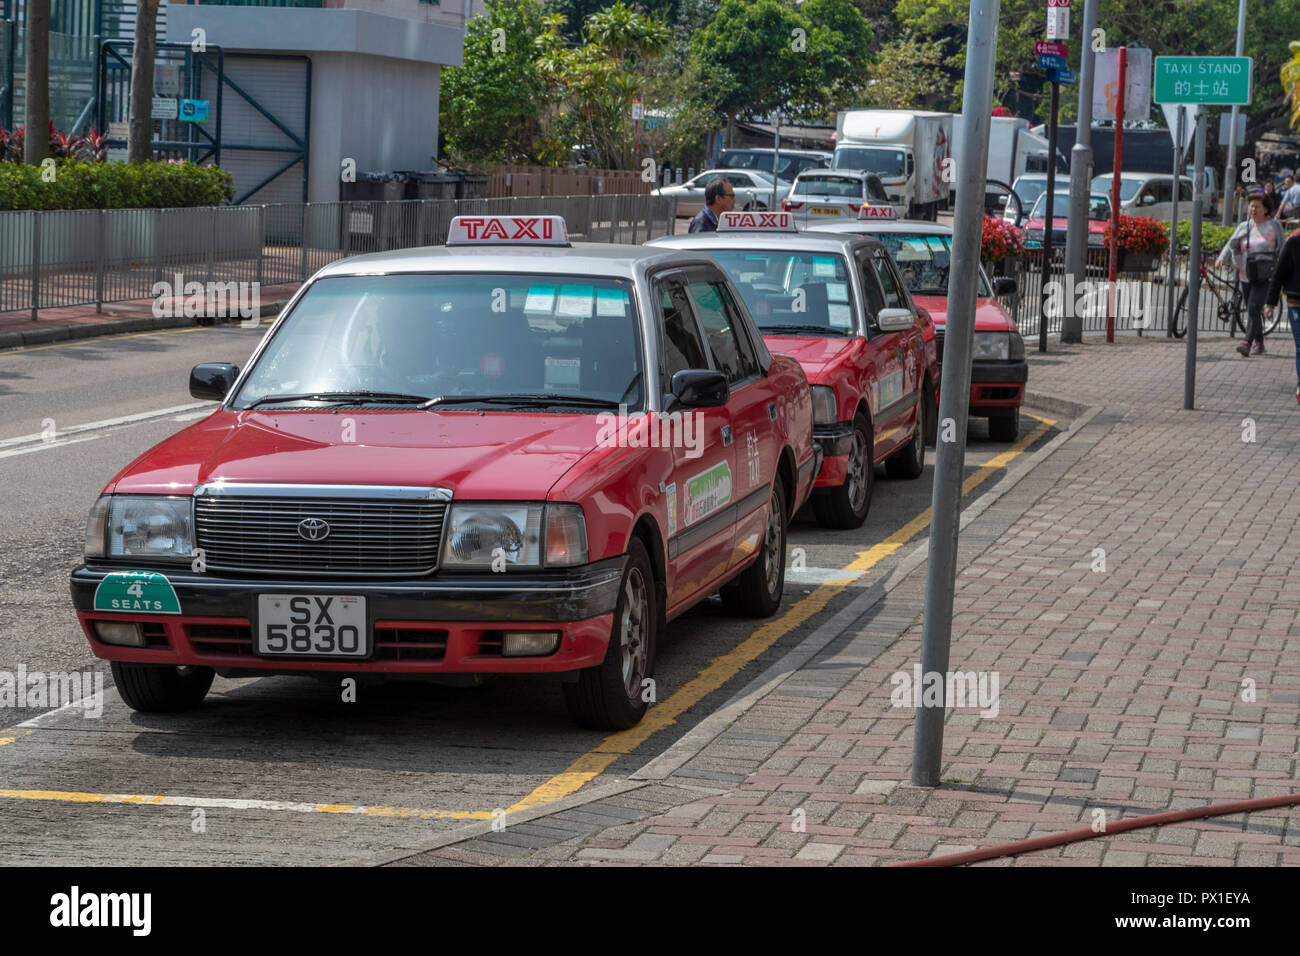 Red Hong Kong taxis in Central District of Hong Kong parked at a local Taxi Stand. - Stock Image